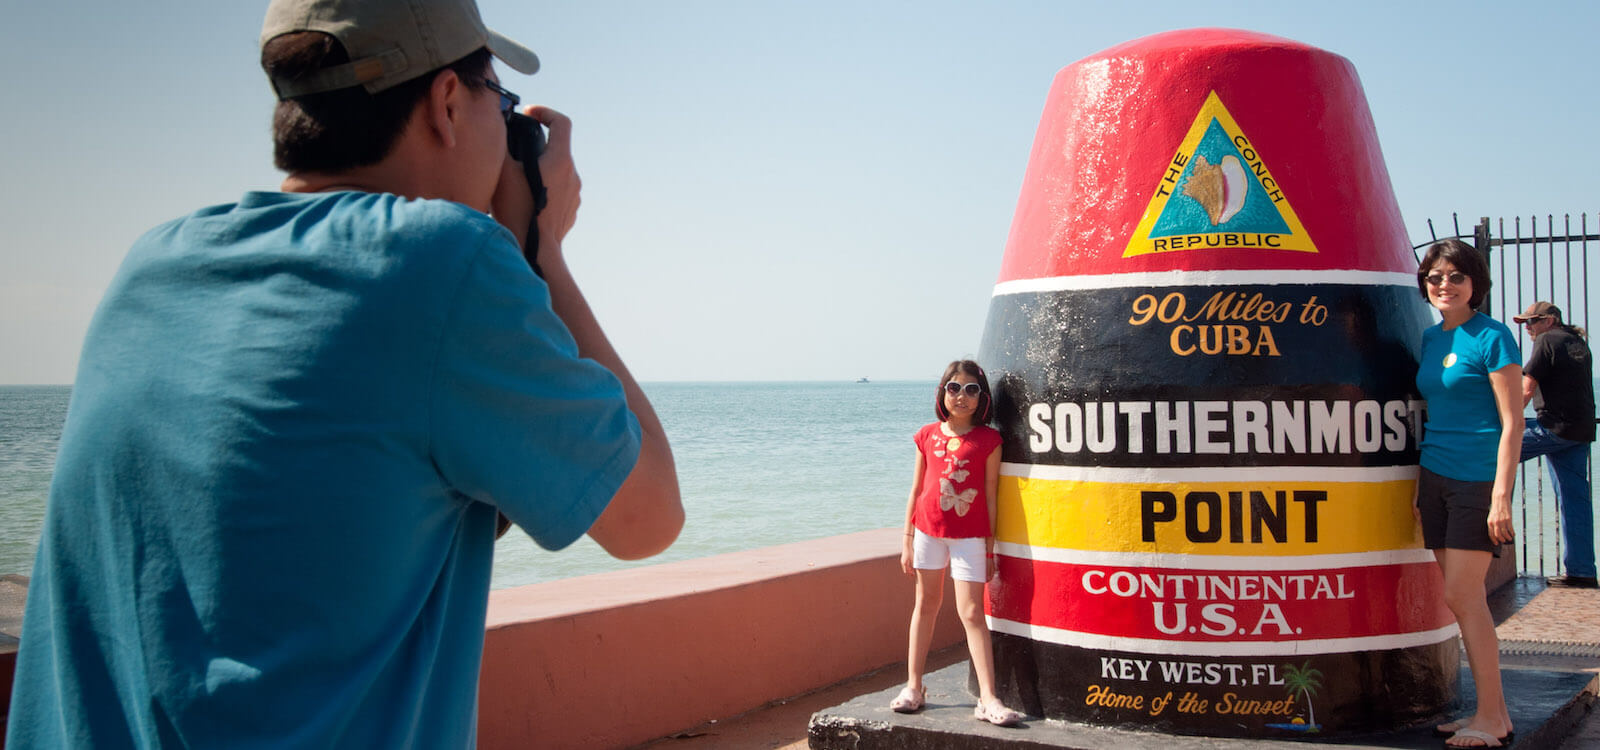 MustDo.com| Take the Key West Express ferry from Fort Myers to Key West and the southernmost point in the USA. You can return the same day or extend your stay!